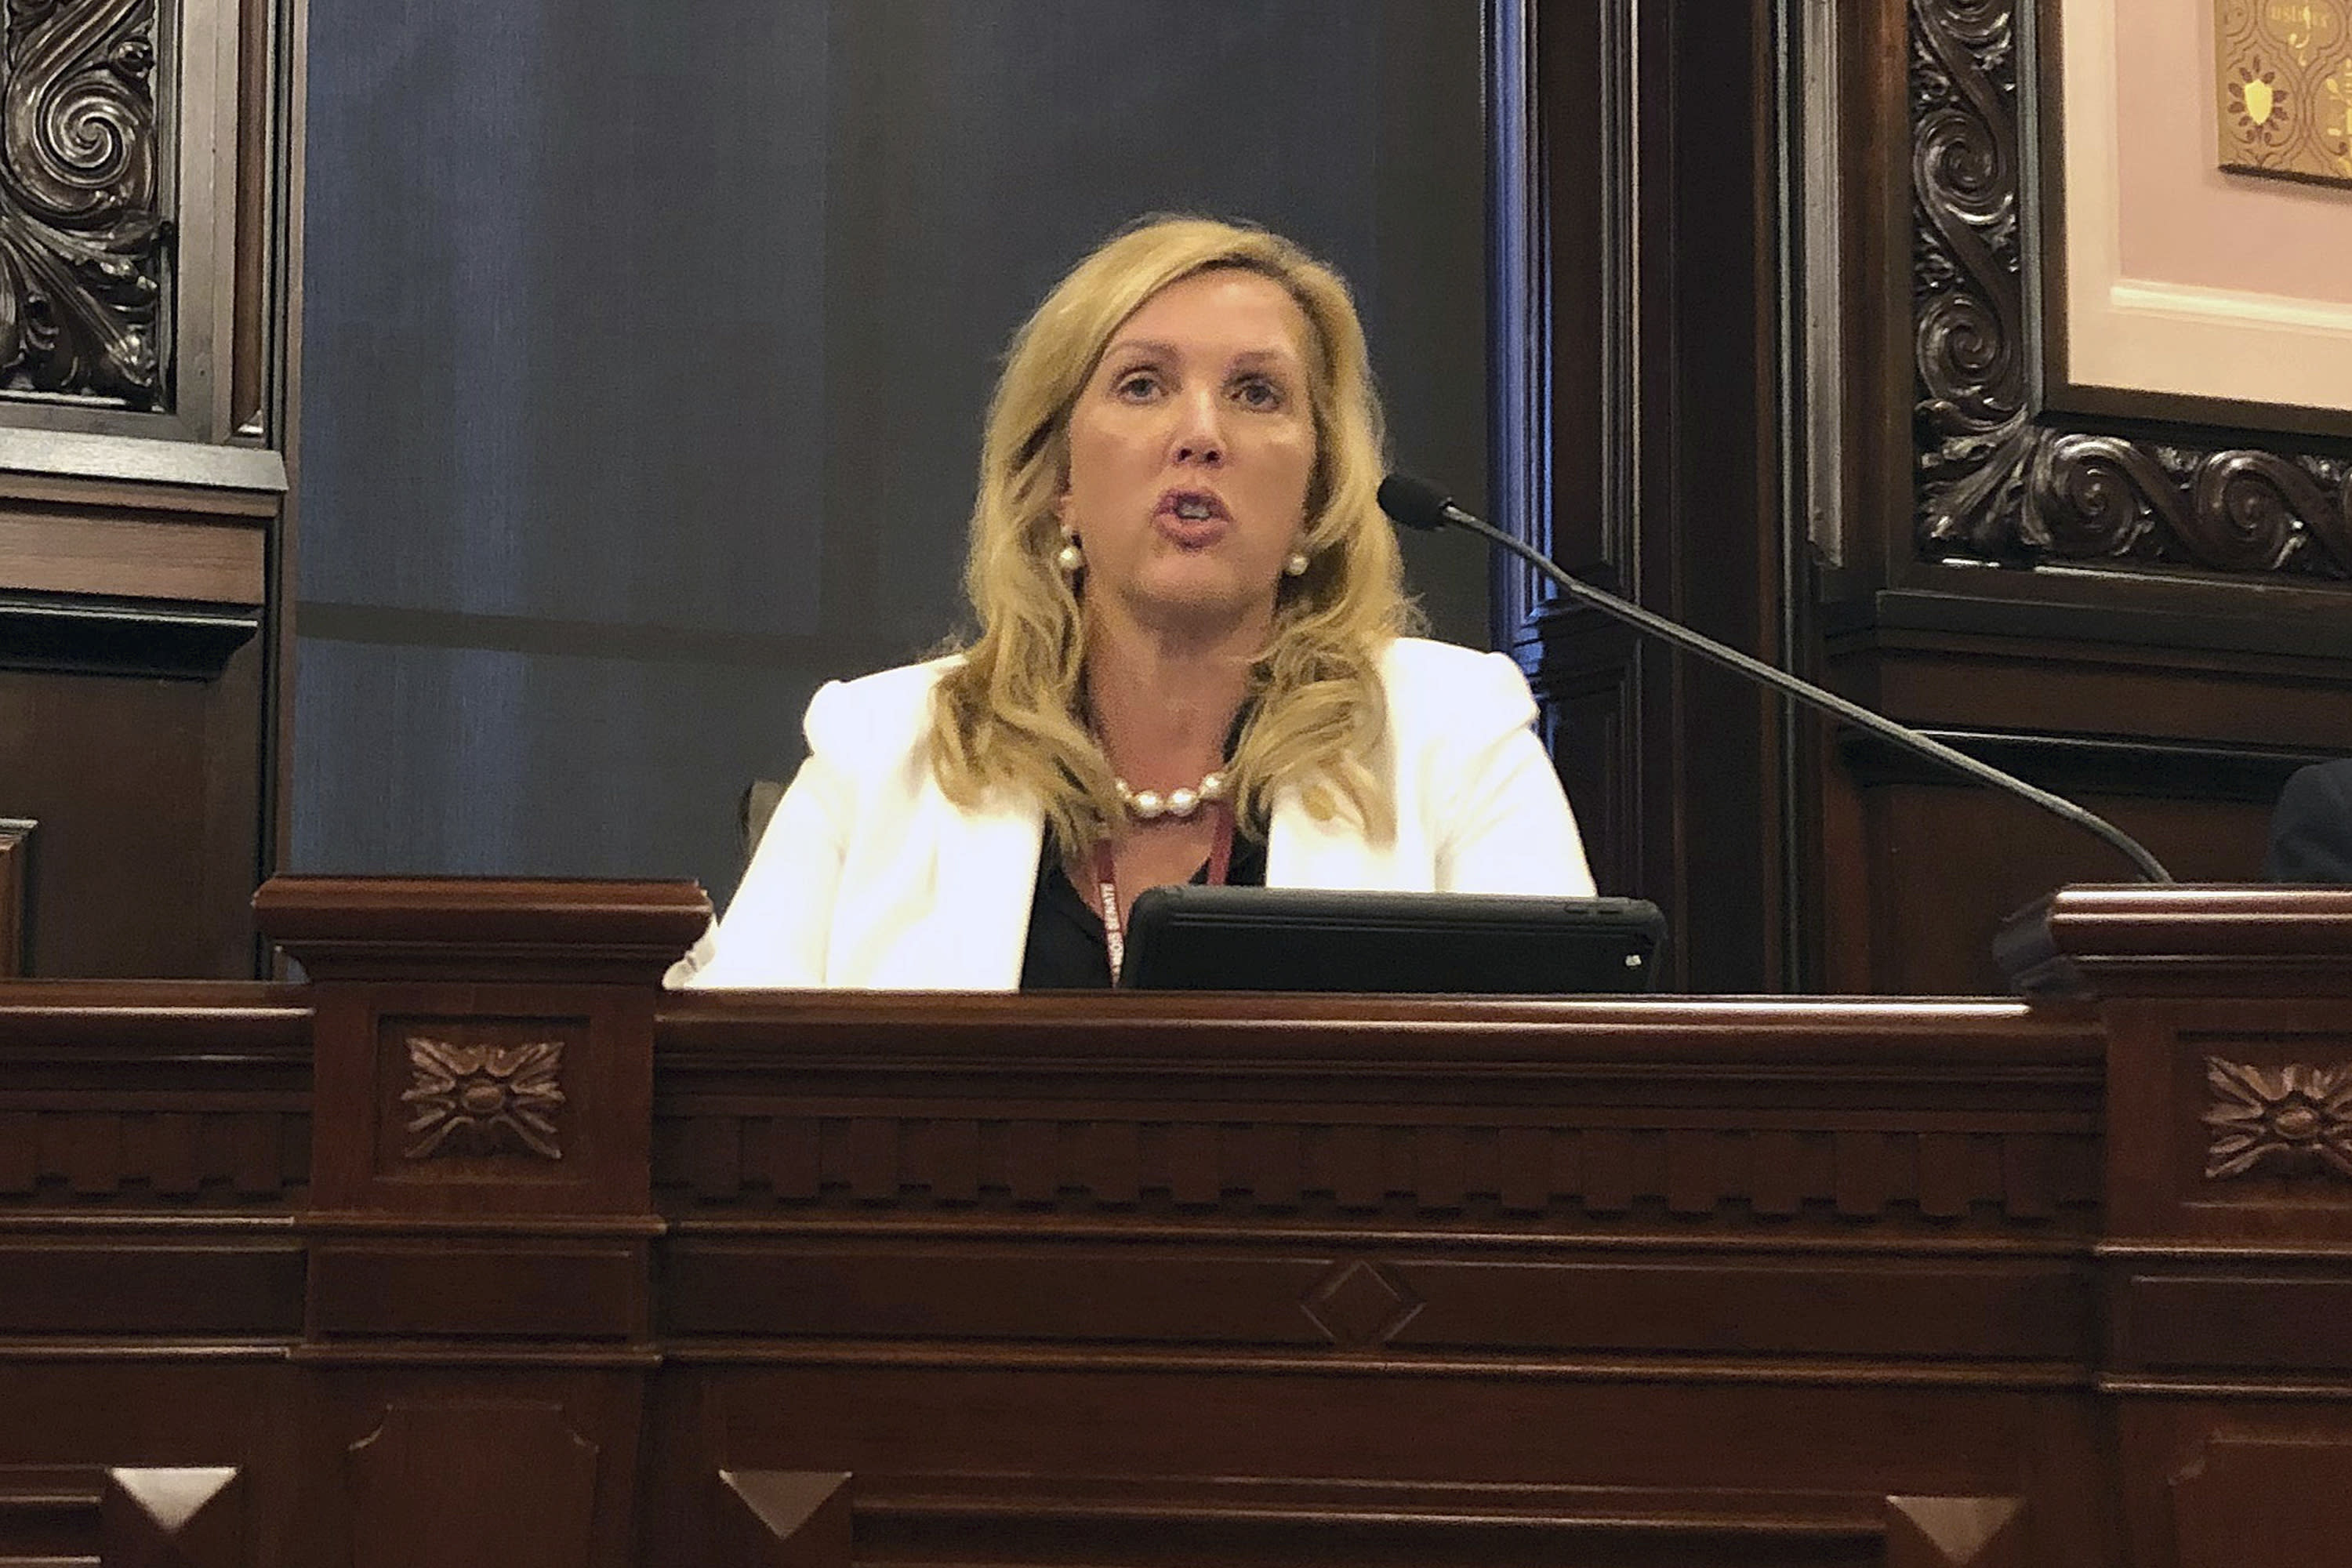 FILE - In this Feb. 6, 2019, file photo, Illinois Sen. Sue Rezin, R-Morris, speaks in Springfield, Ill. More Republican women than ever are seeking House seats this year after the 2018 election further diminished their limited ranks in Congress. But so far it appears that any gains this November could be modest. (AP Photo/John O'Connor, File)